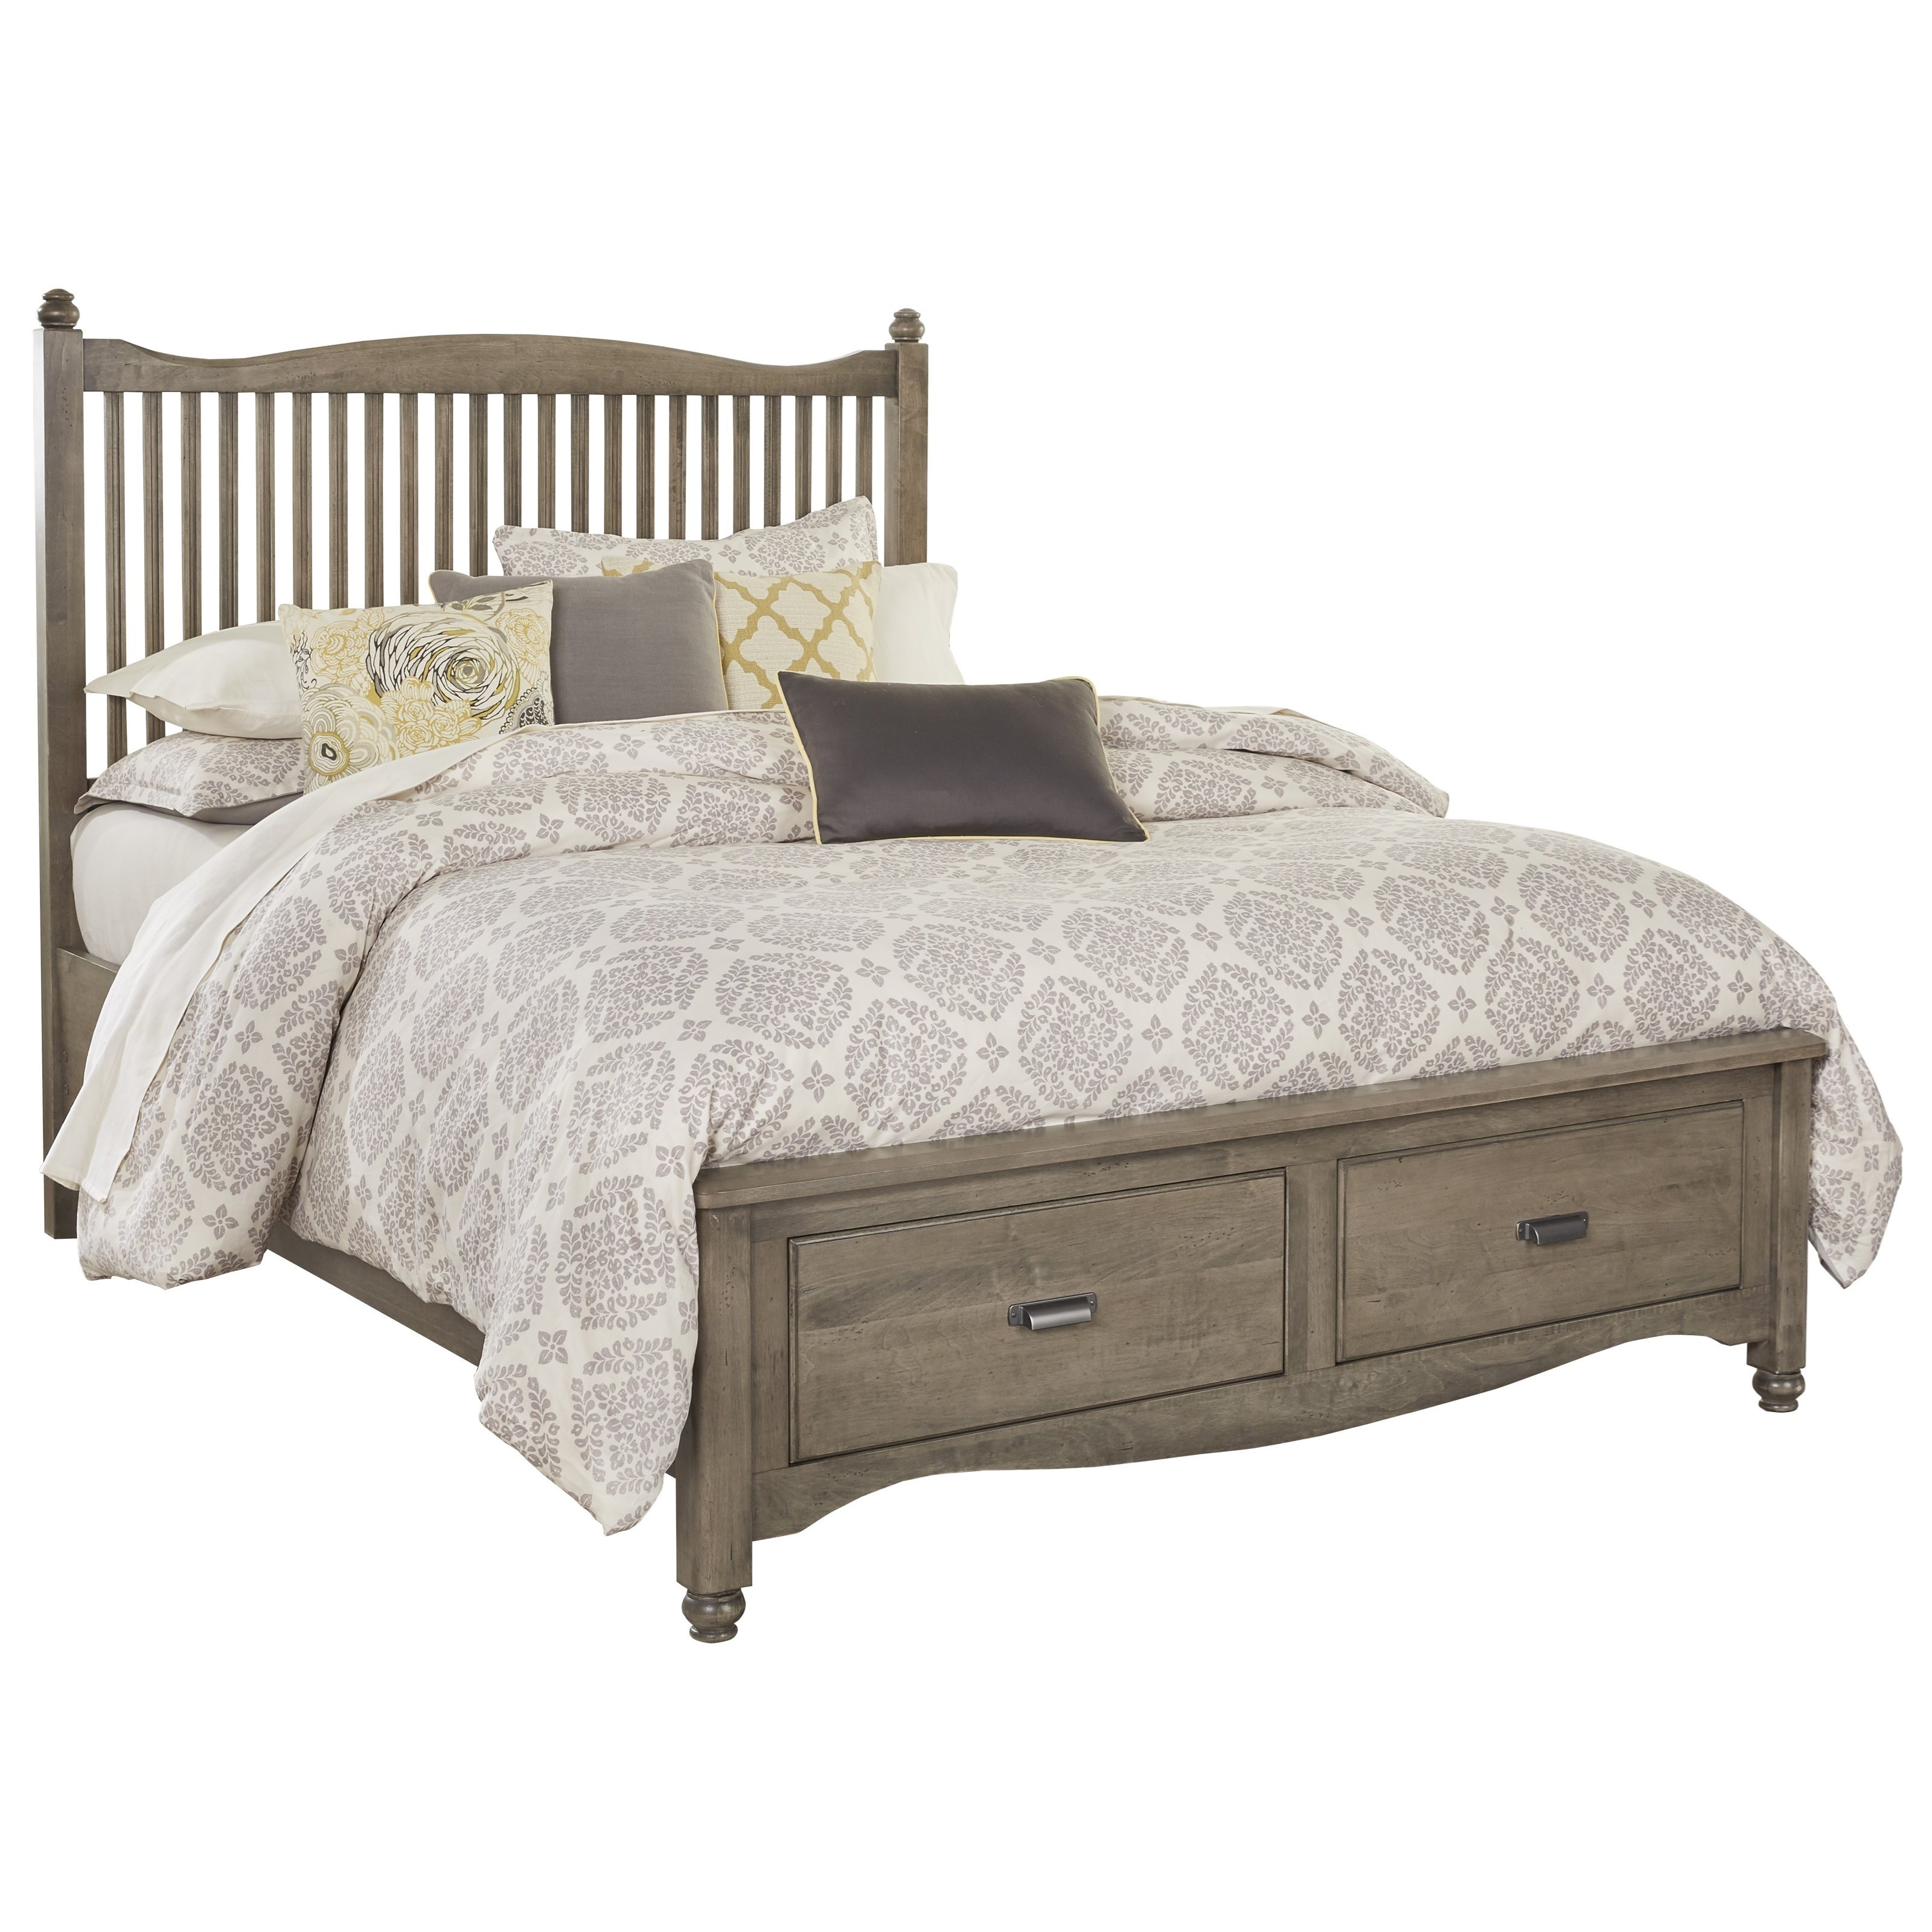 Vaughan Bassett American Maple Queen Slat Storage Bed - Item Number: 401-557+050B+502+555T